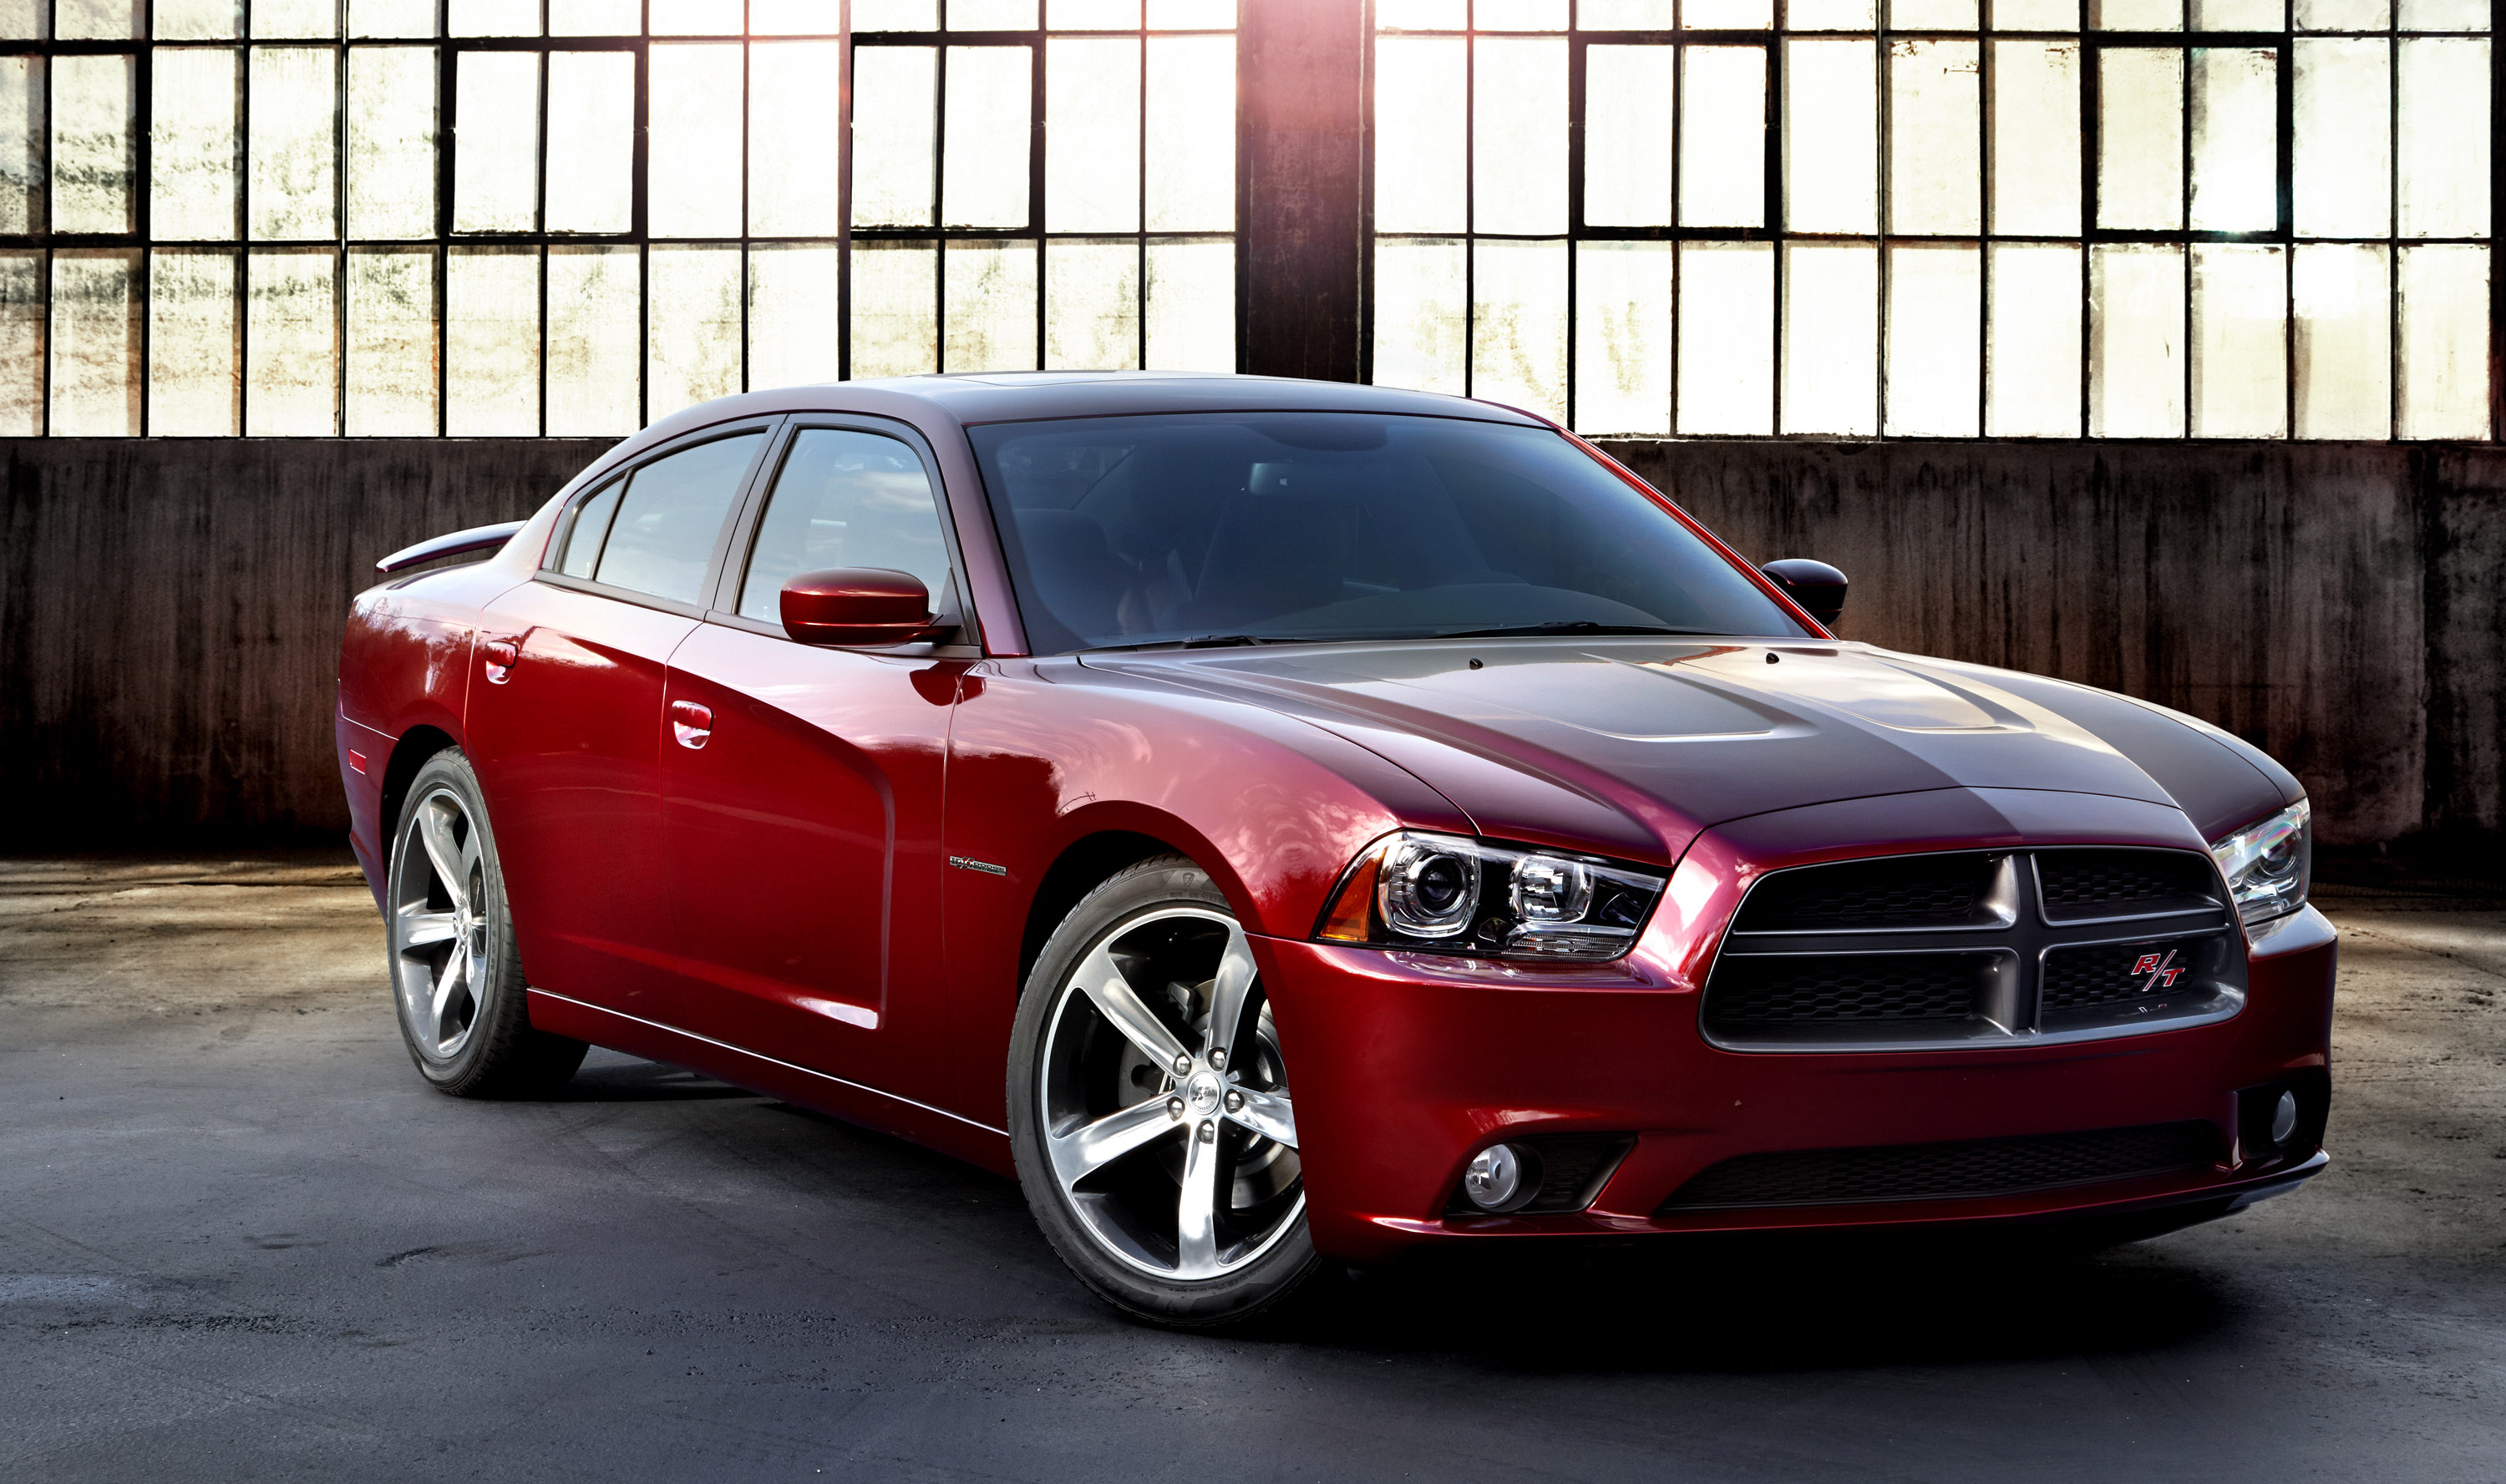 2014 dodge charger 100th anniversary edition - Dodge Charger 2014 Red